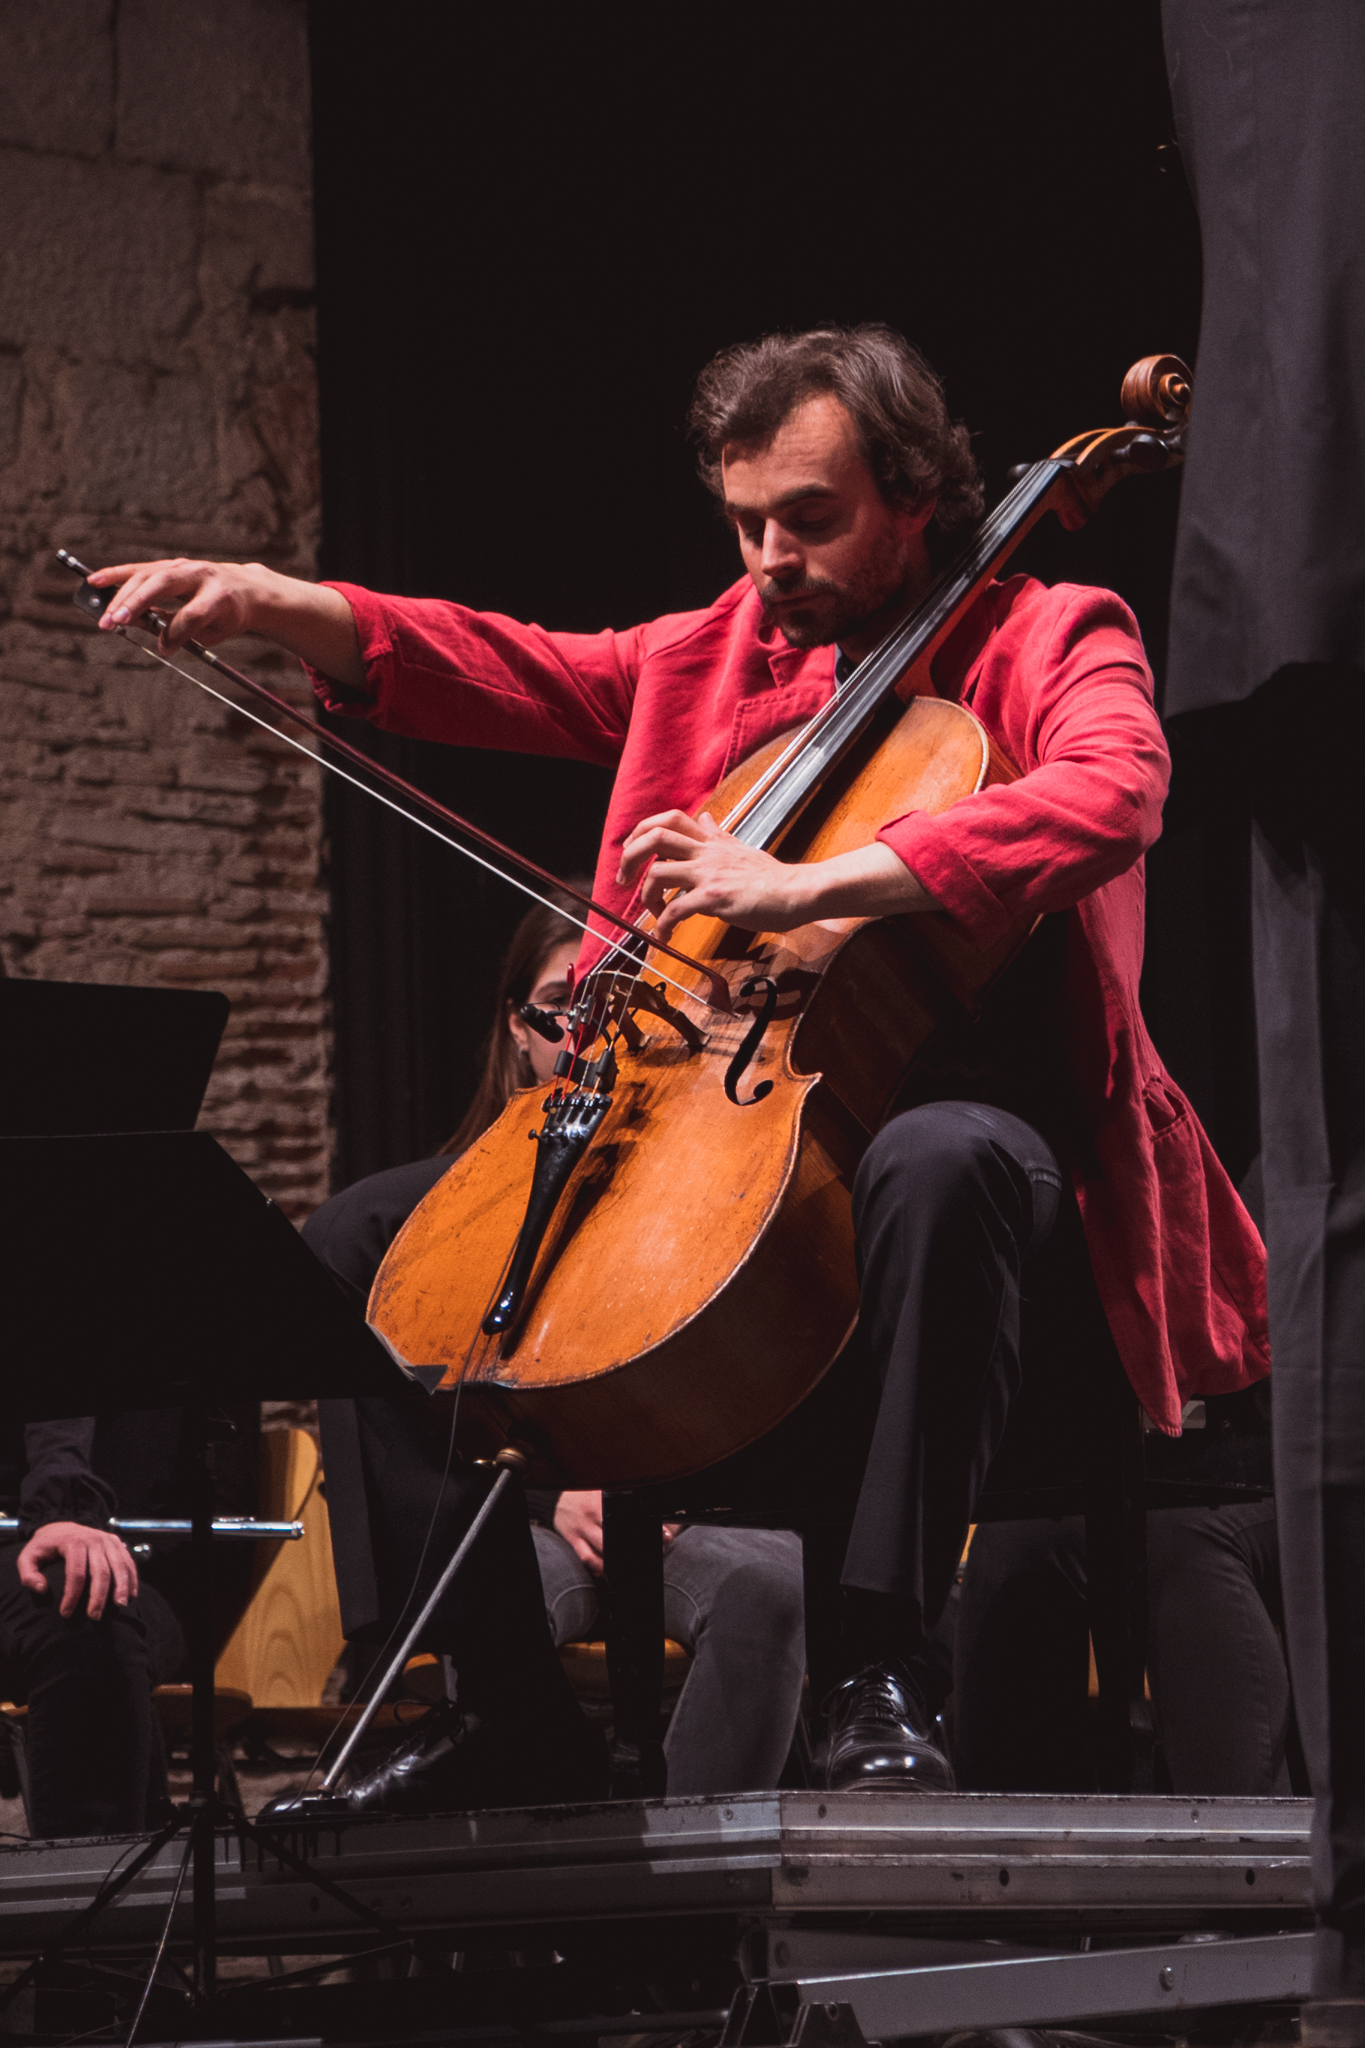 Ramon Bassal - Cello